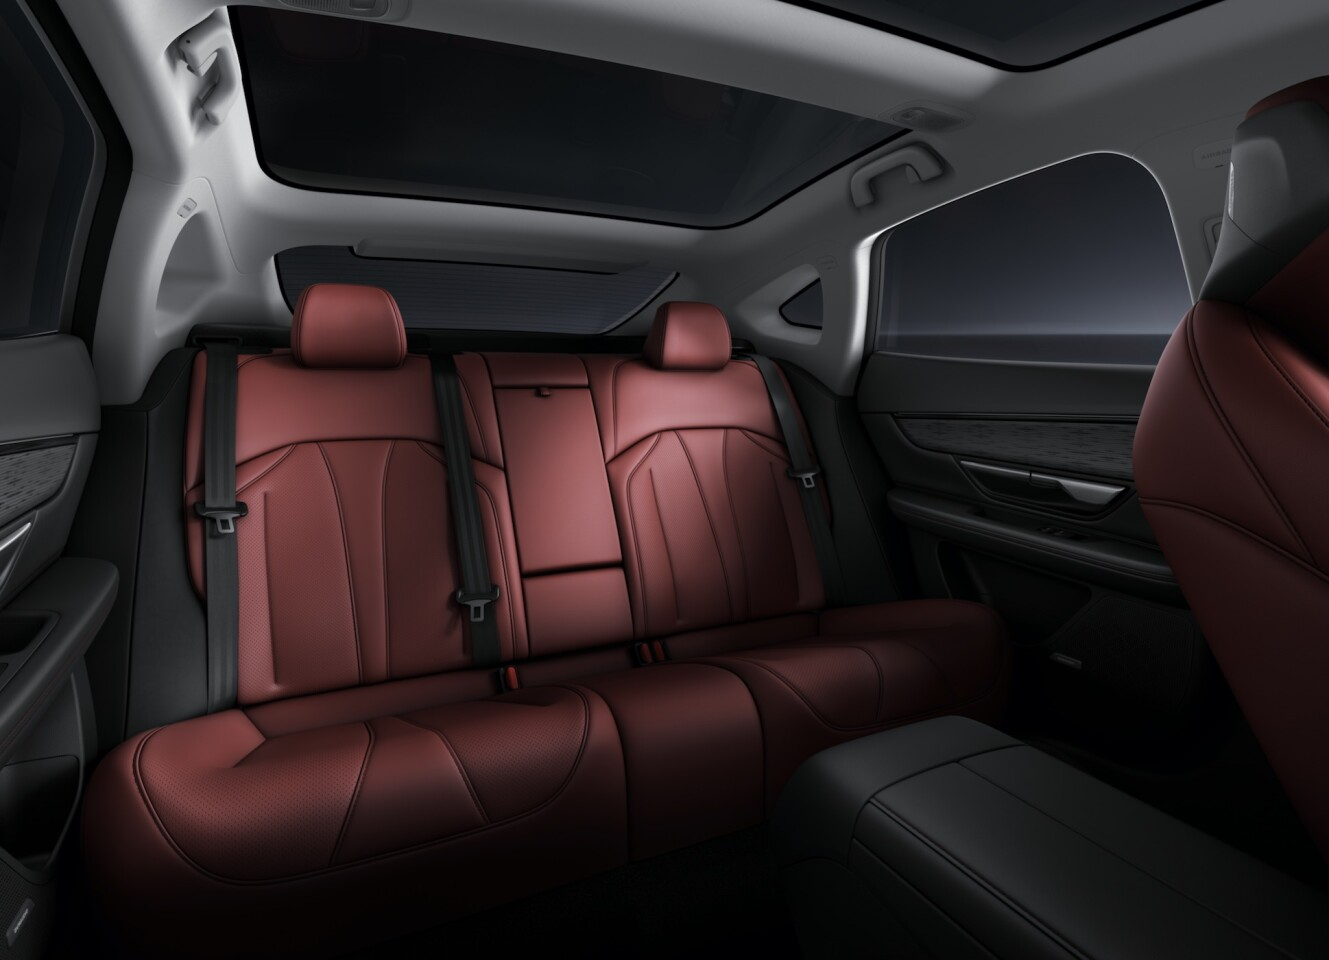 Rear seats and panoramic roof